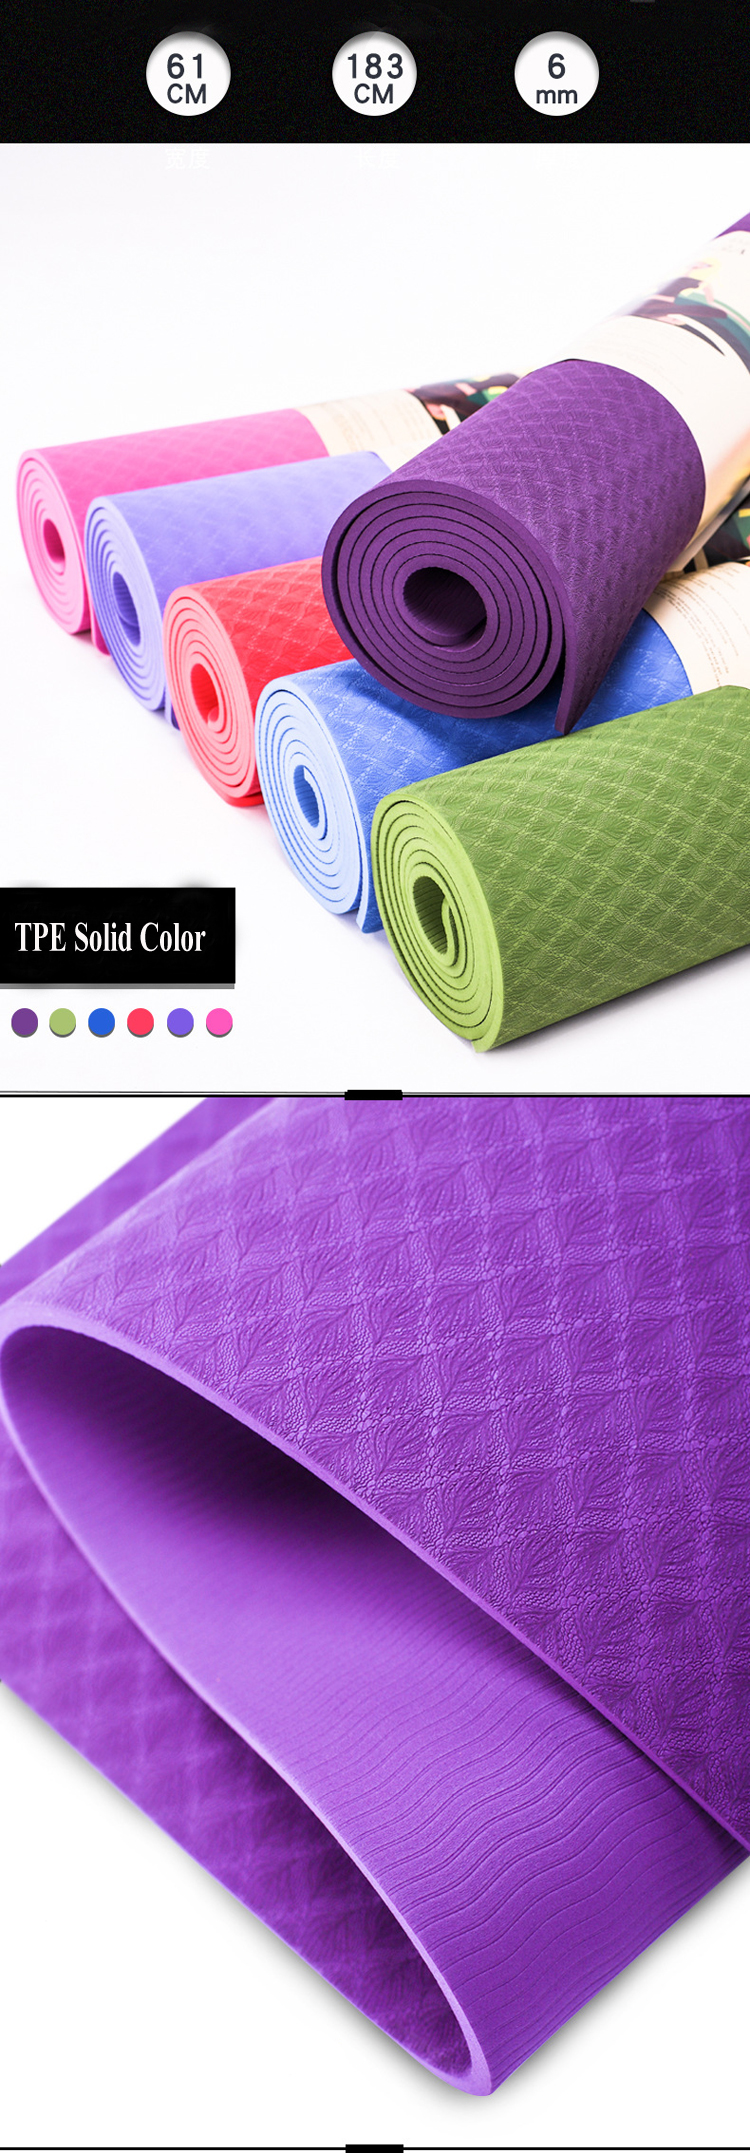 Gruper Thick Yoga Mat,Classic Non Slip Exercise & Fitness Mats with Carrying Strap,Workout Mat for All Types of Yoga